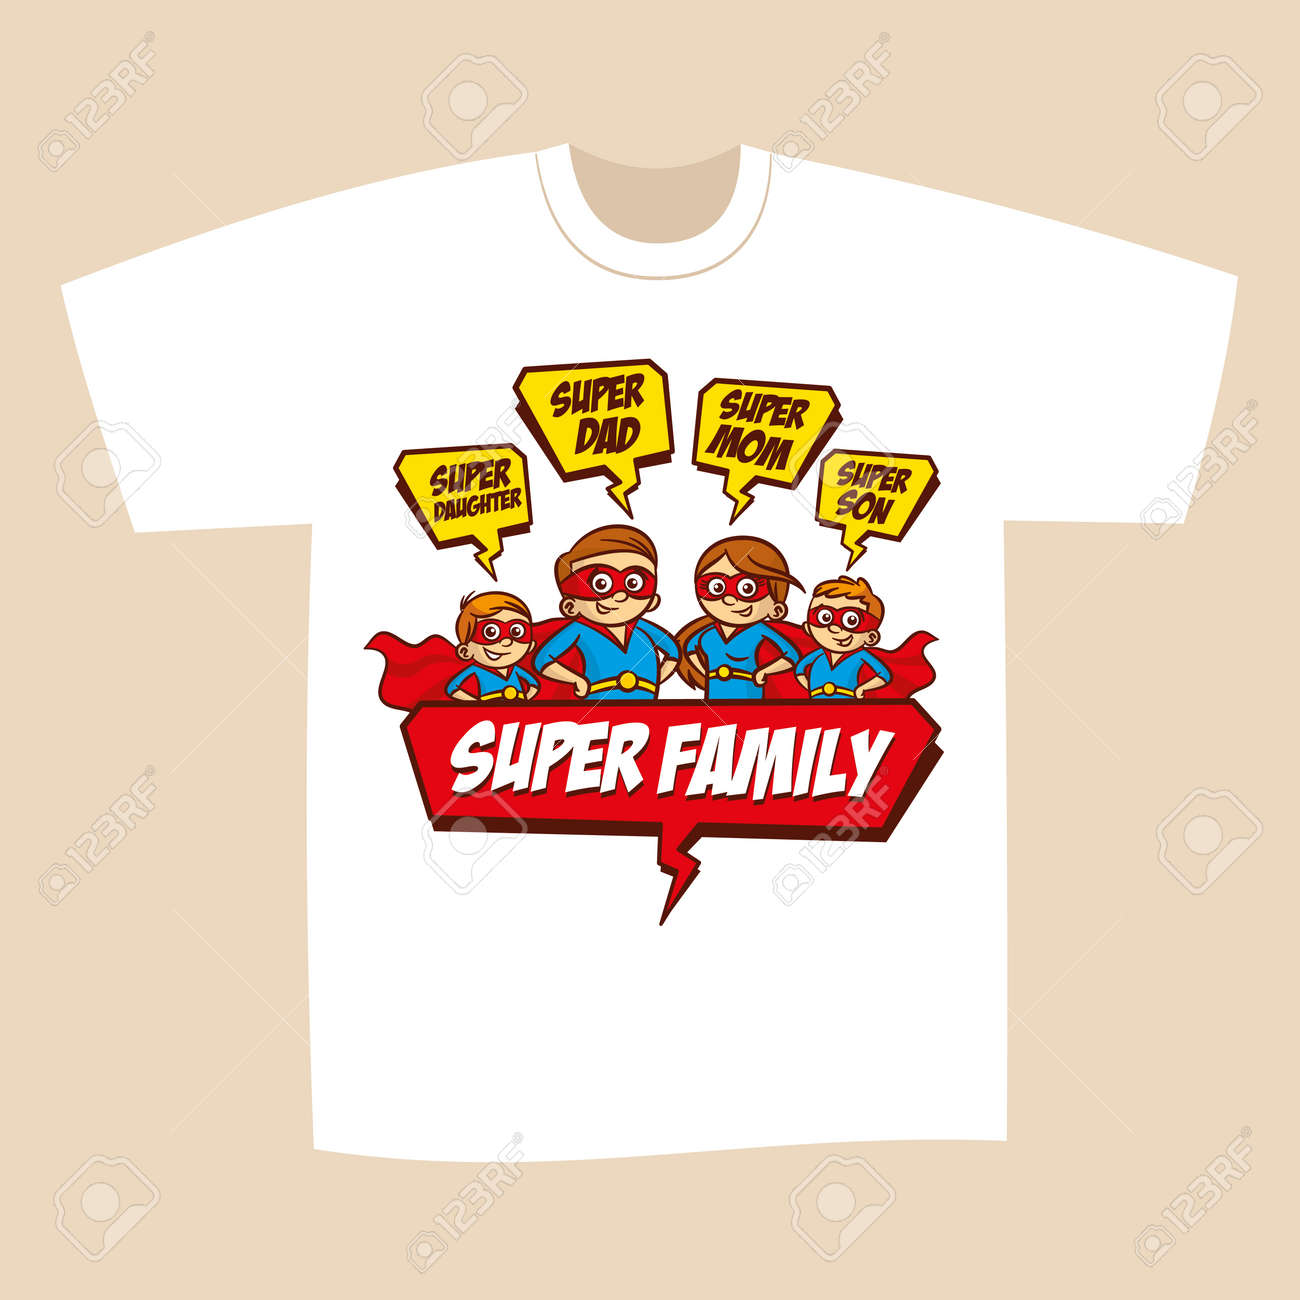 473d4725 T-shirt Print Design Superheroes Family Royalty Free Cliparts ...